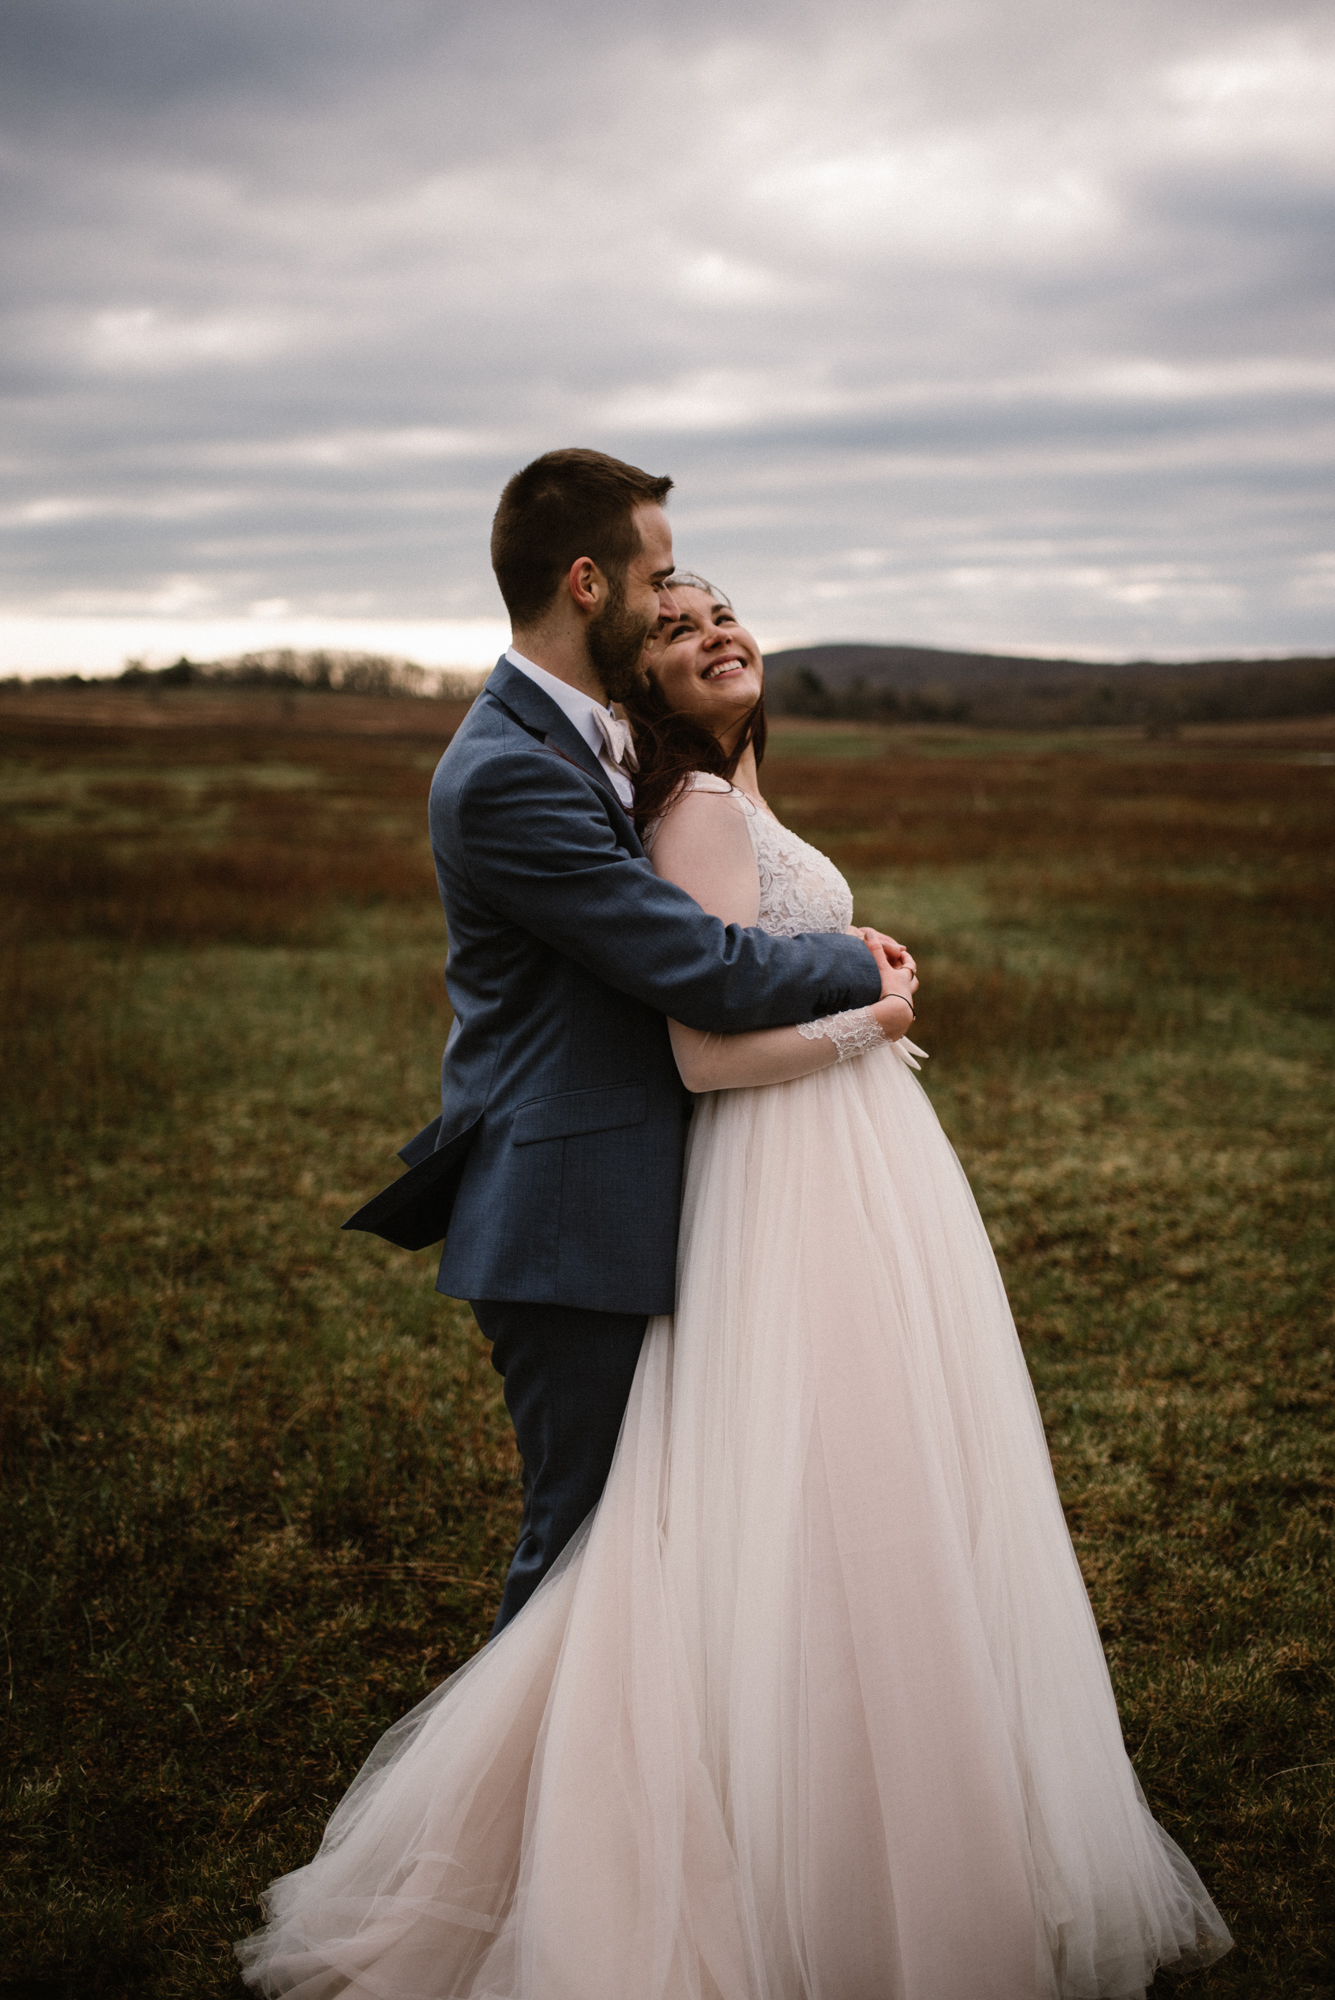 Paula and Andrew - Small Adventurous Wedding in Shenandoah National Park - Blue Ridge Mountain Wedding - White Sails Creative - Mountain Elopement_34.jpg